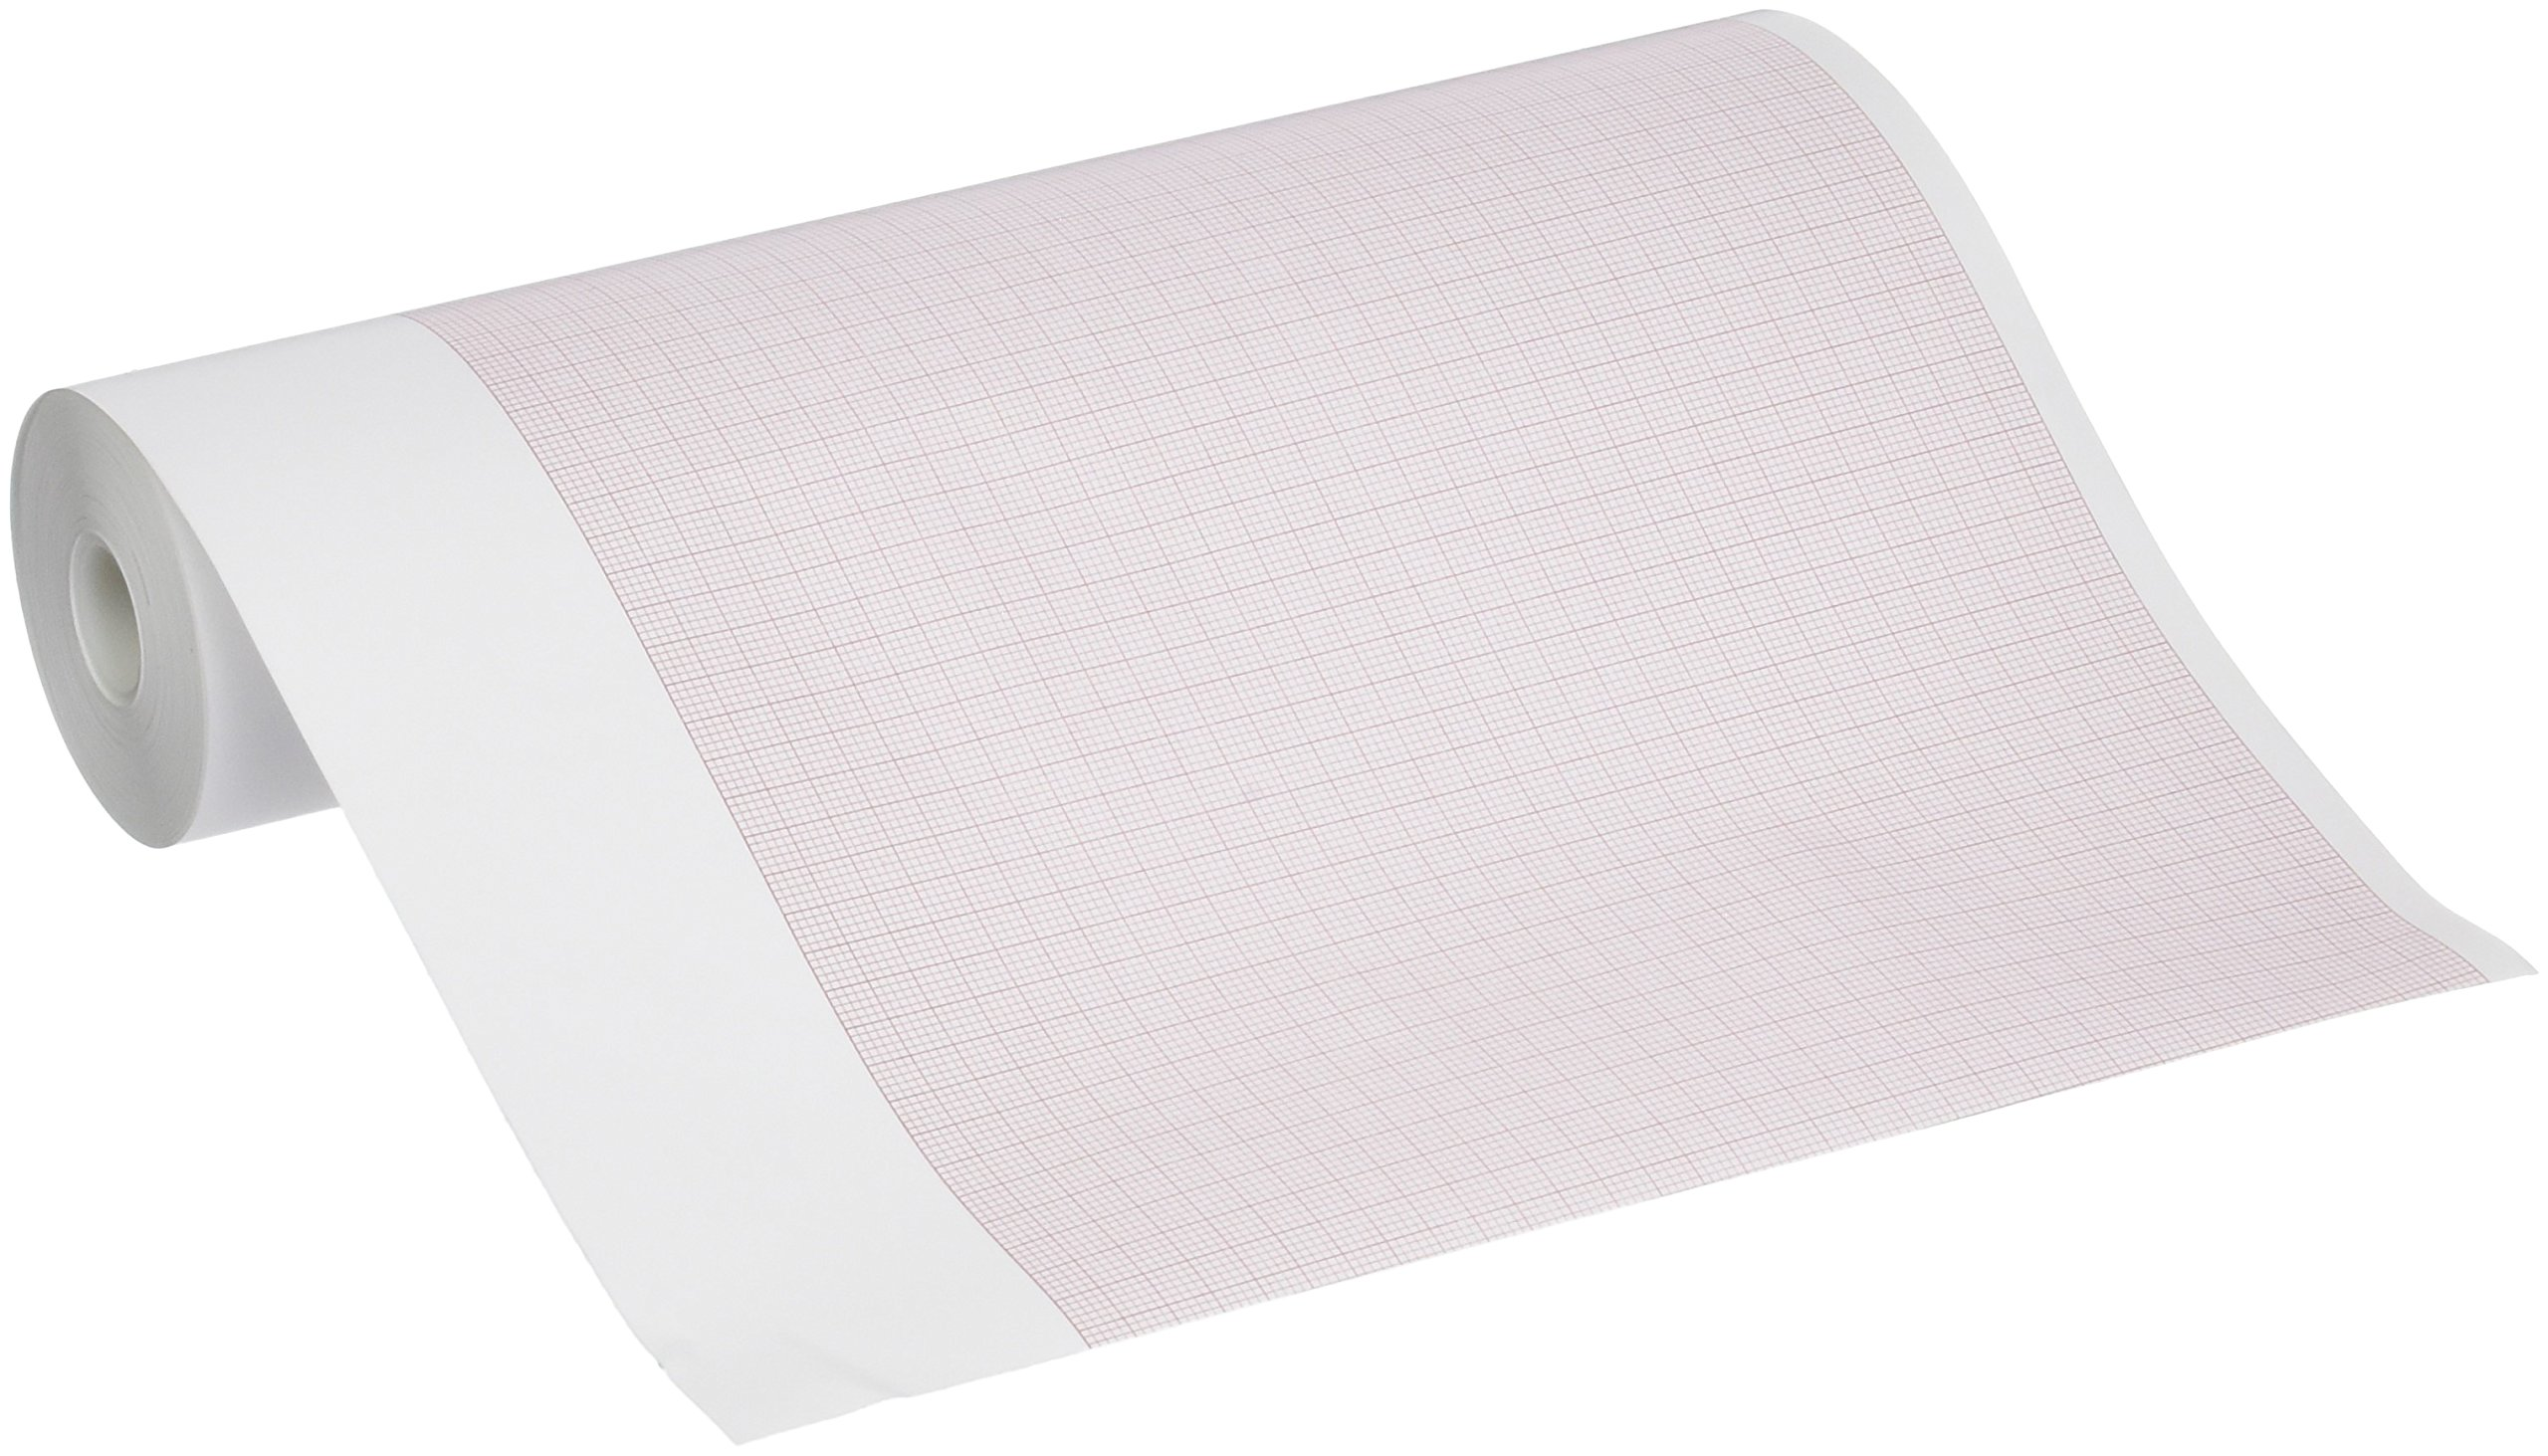 Mortara 9100-029-50 Thermal Paper Roll with Header Full Size for use with The ELI/Bur 230, 8/27'' x 840'' Size (Pack of 12)